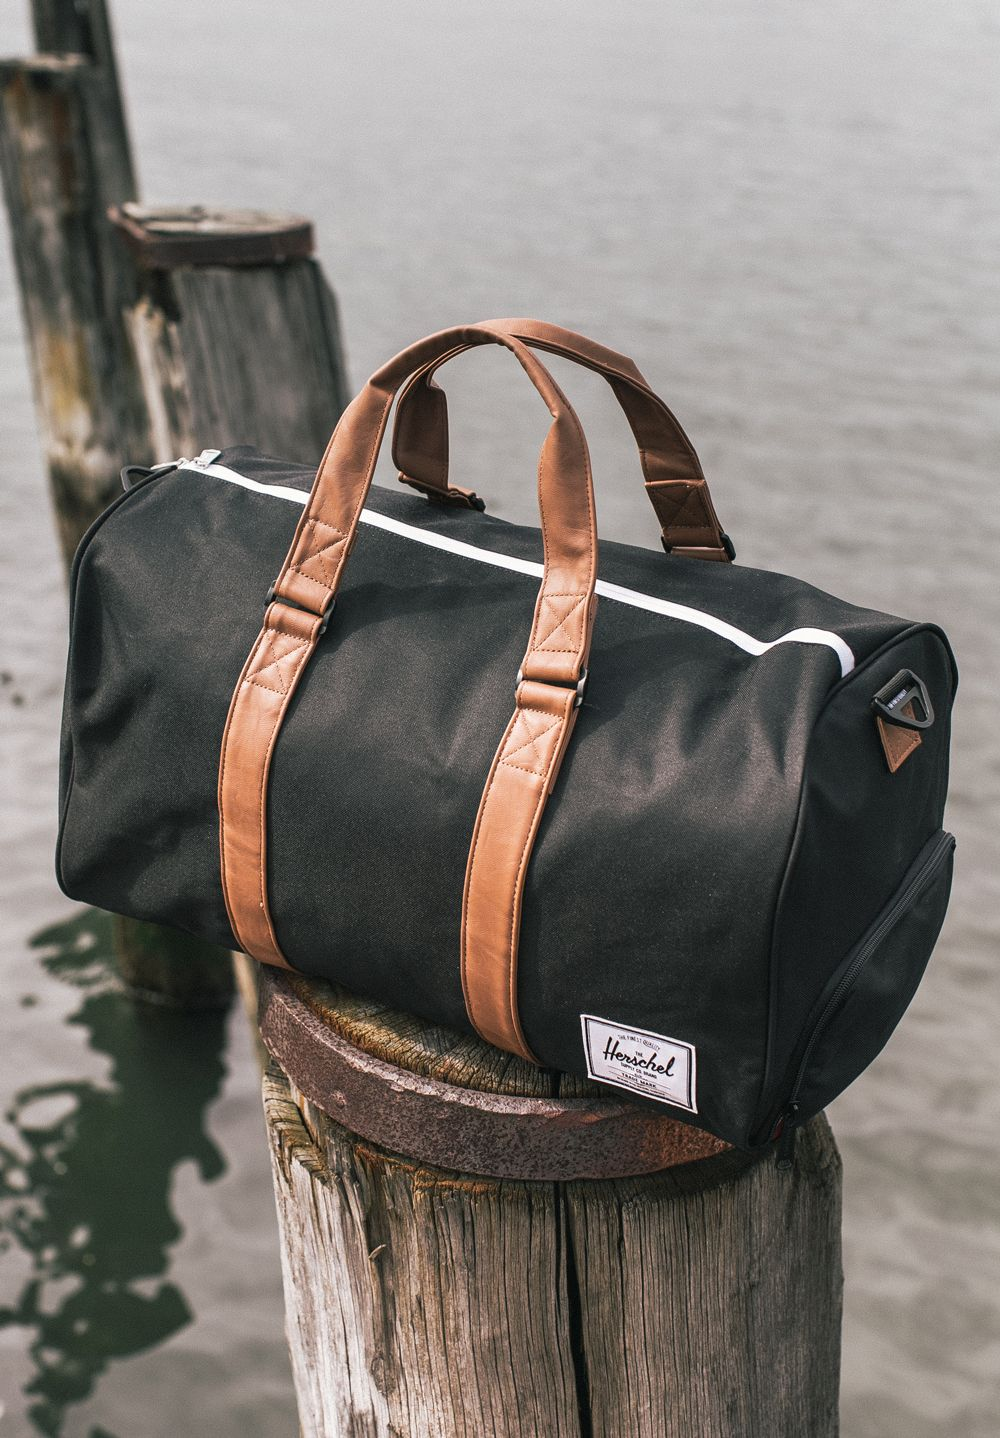 8cb9d4de31 The Herschel Supply Co. Novel Duffle - The official bag of Overpackers  Anonymous.